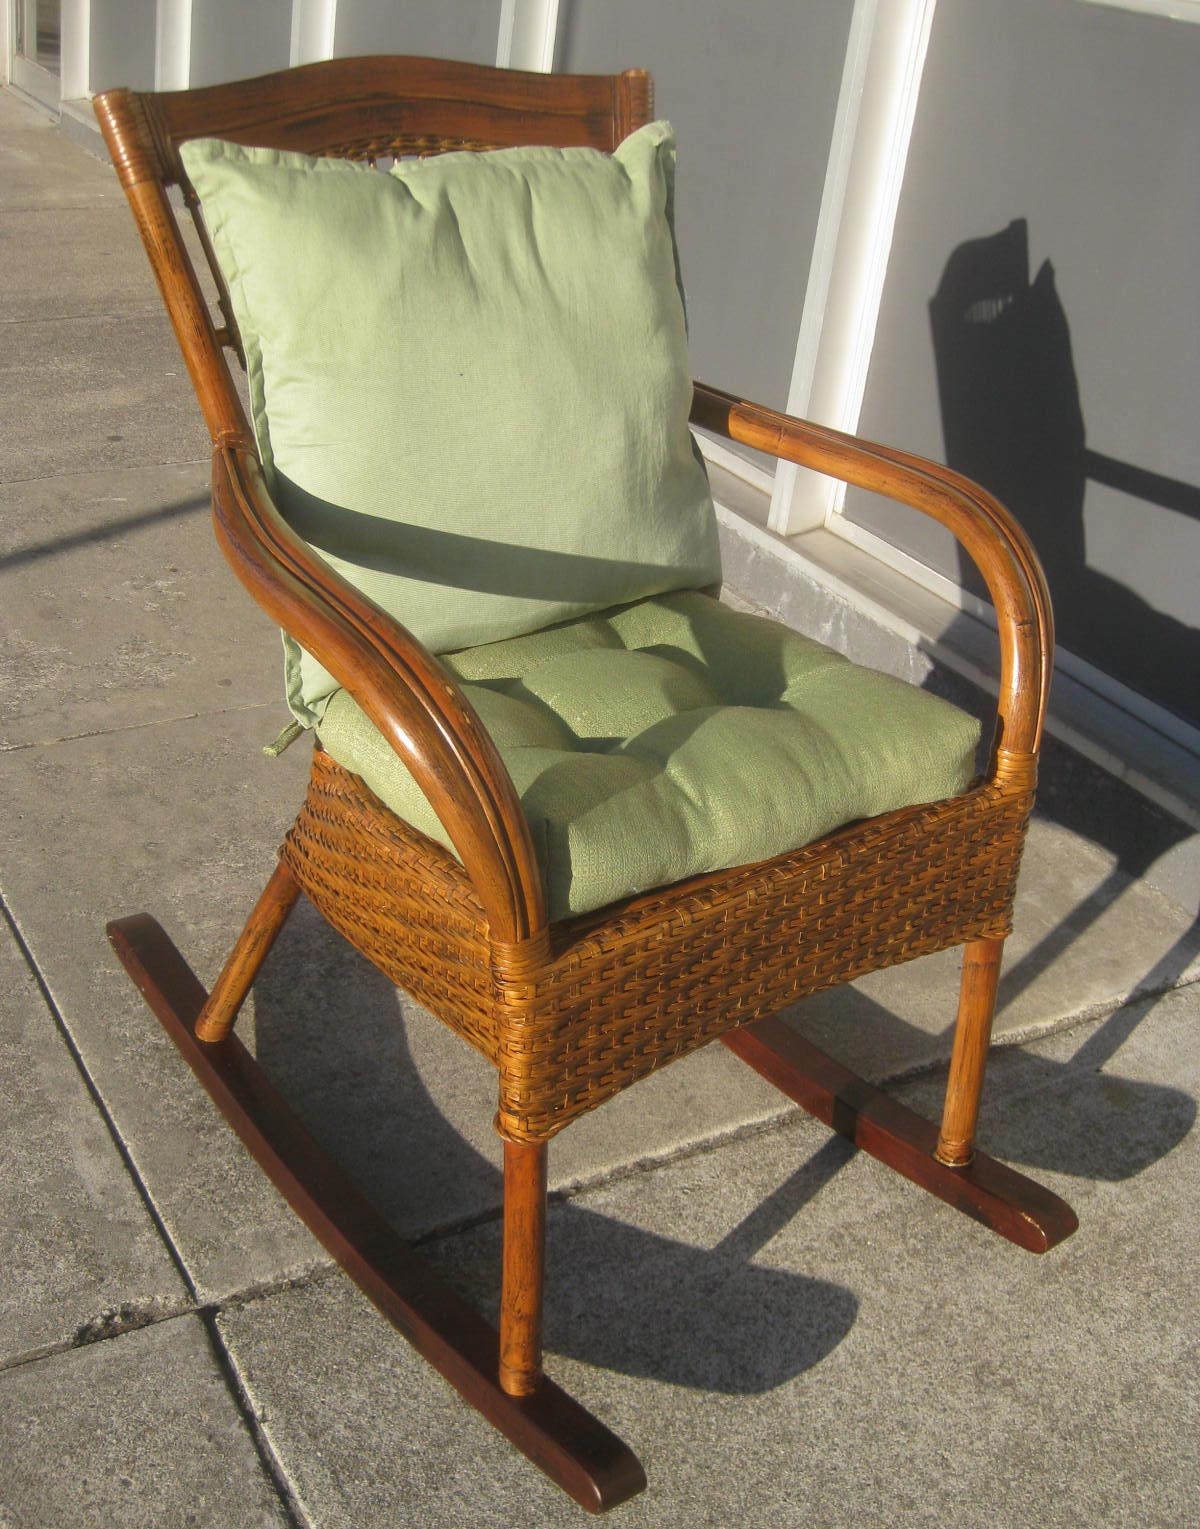 rocking chairs for nursery south africa pottery barn child chair covers uhuru furniture and collectibles sold 120